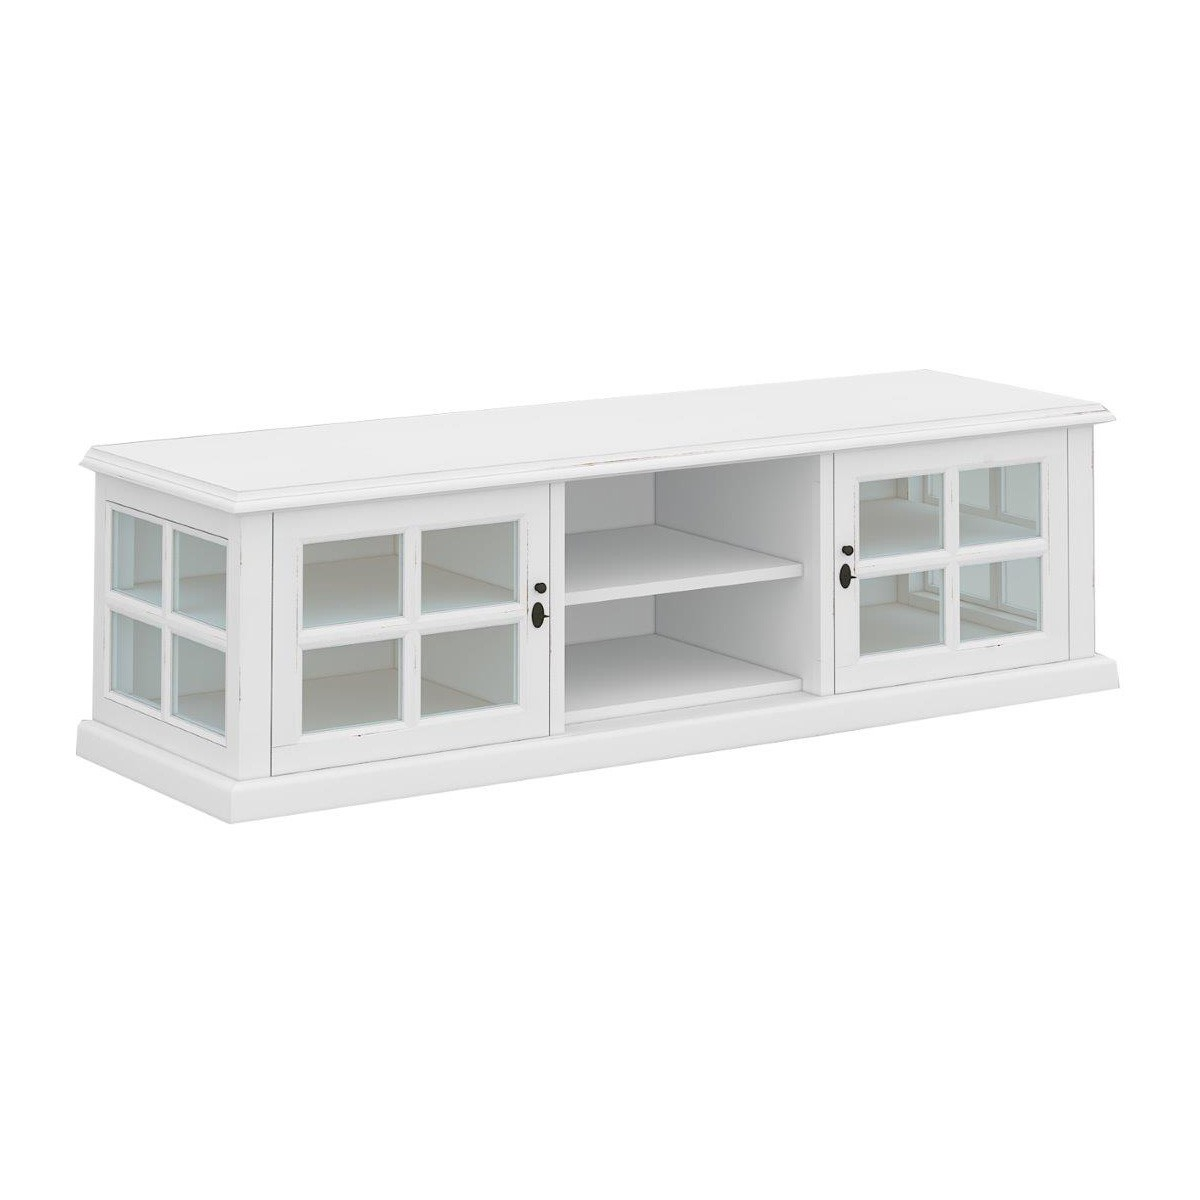 Tilbury Acacia Timber 2 Door TV Unit, 158cm, White